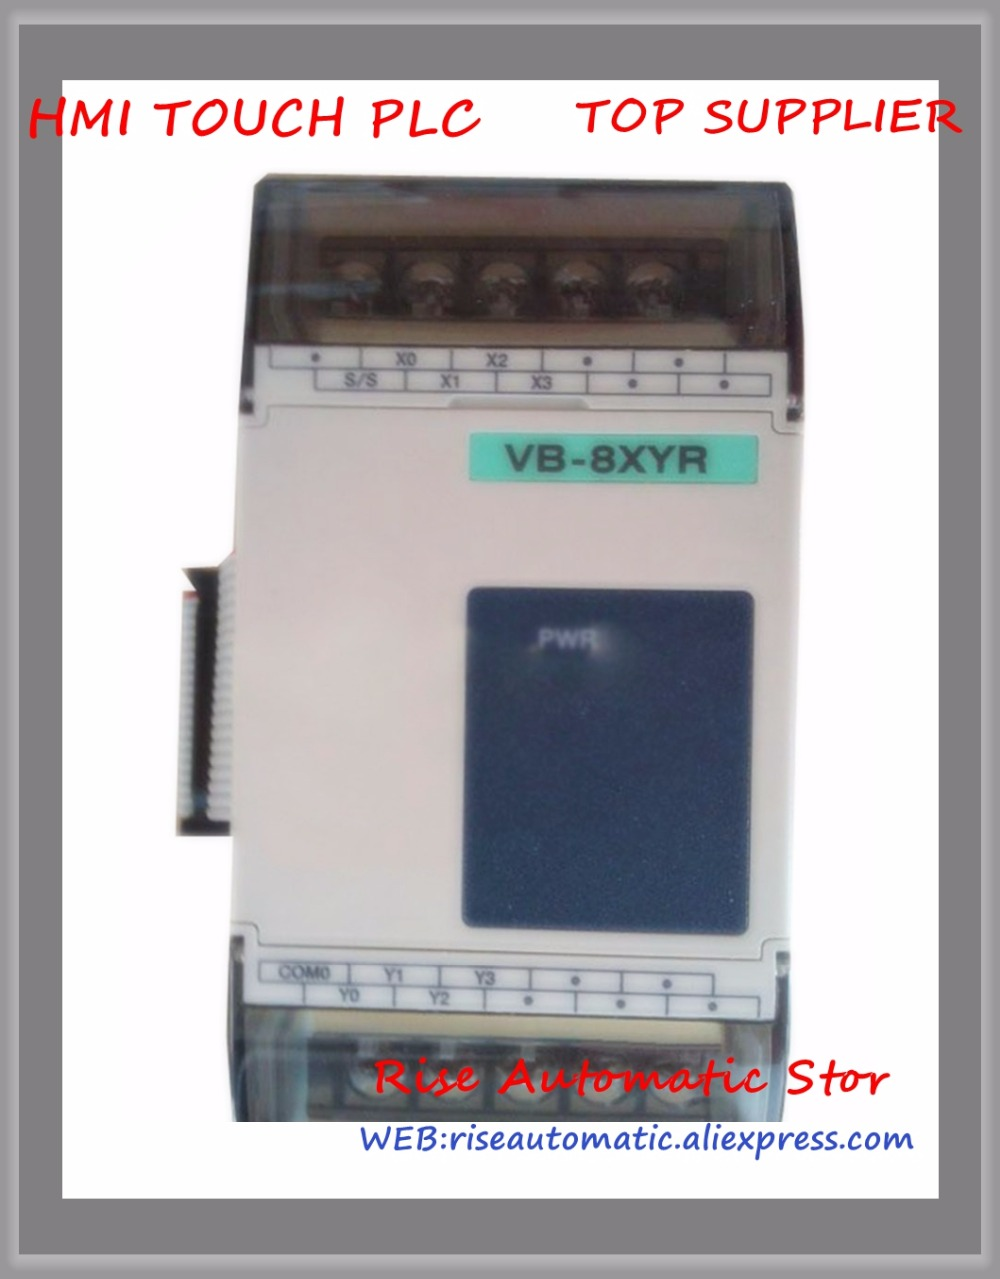 Brand New Original VB-8XYR PLC 24VDC 4 point DC24V input 4 point output Expansion Module new original vb 16yr plc 24vdc 16 point input expansion module